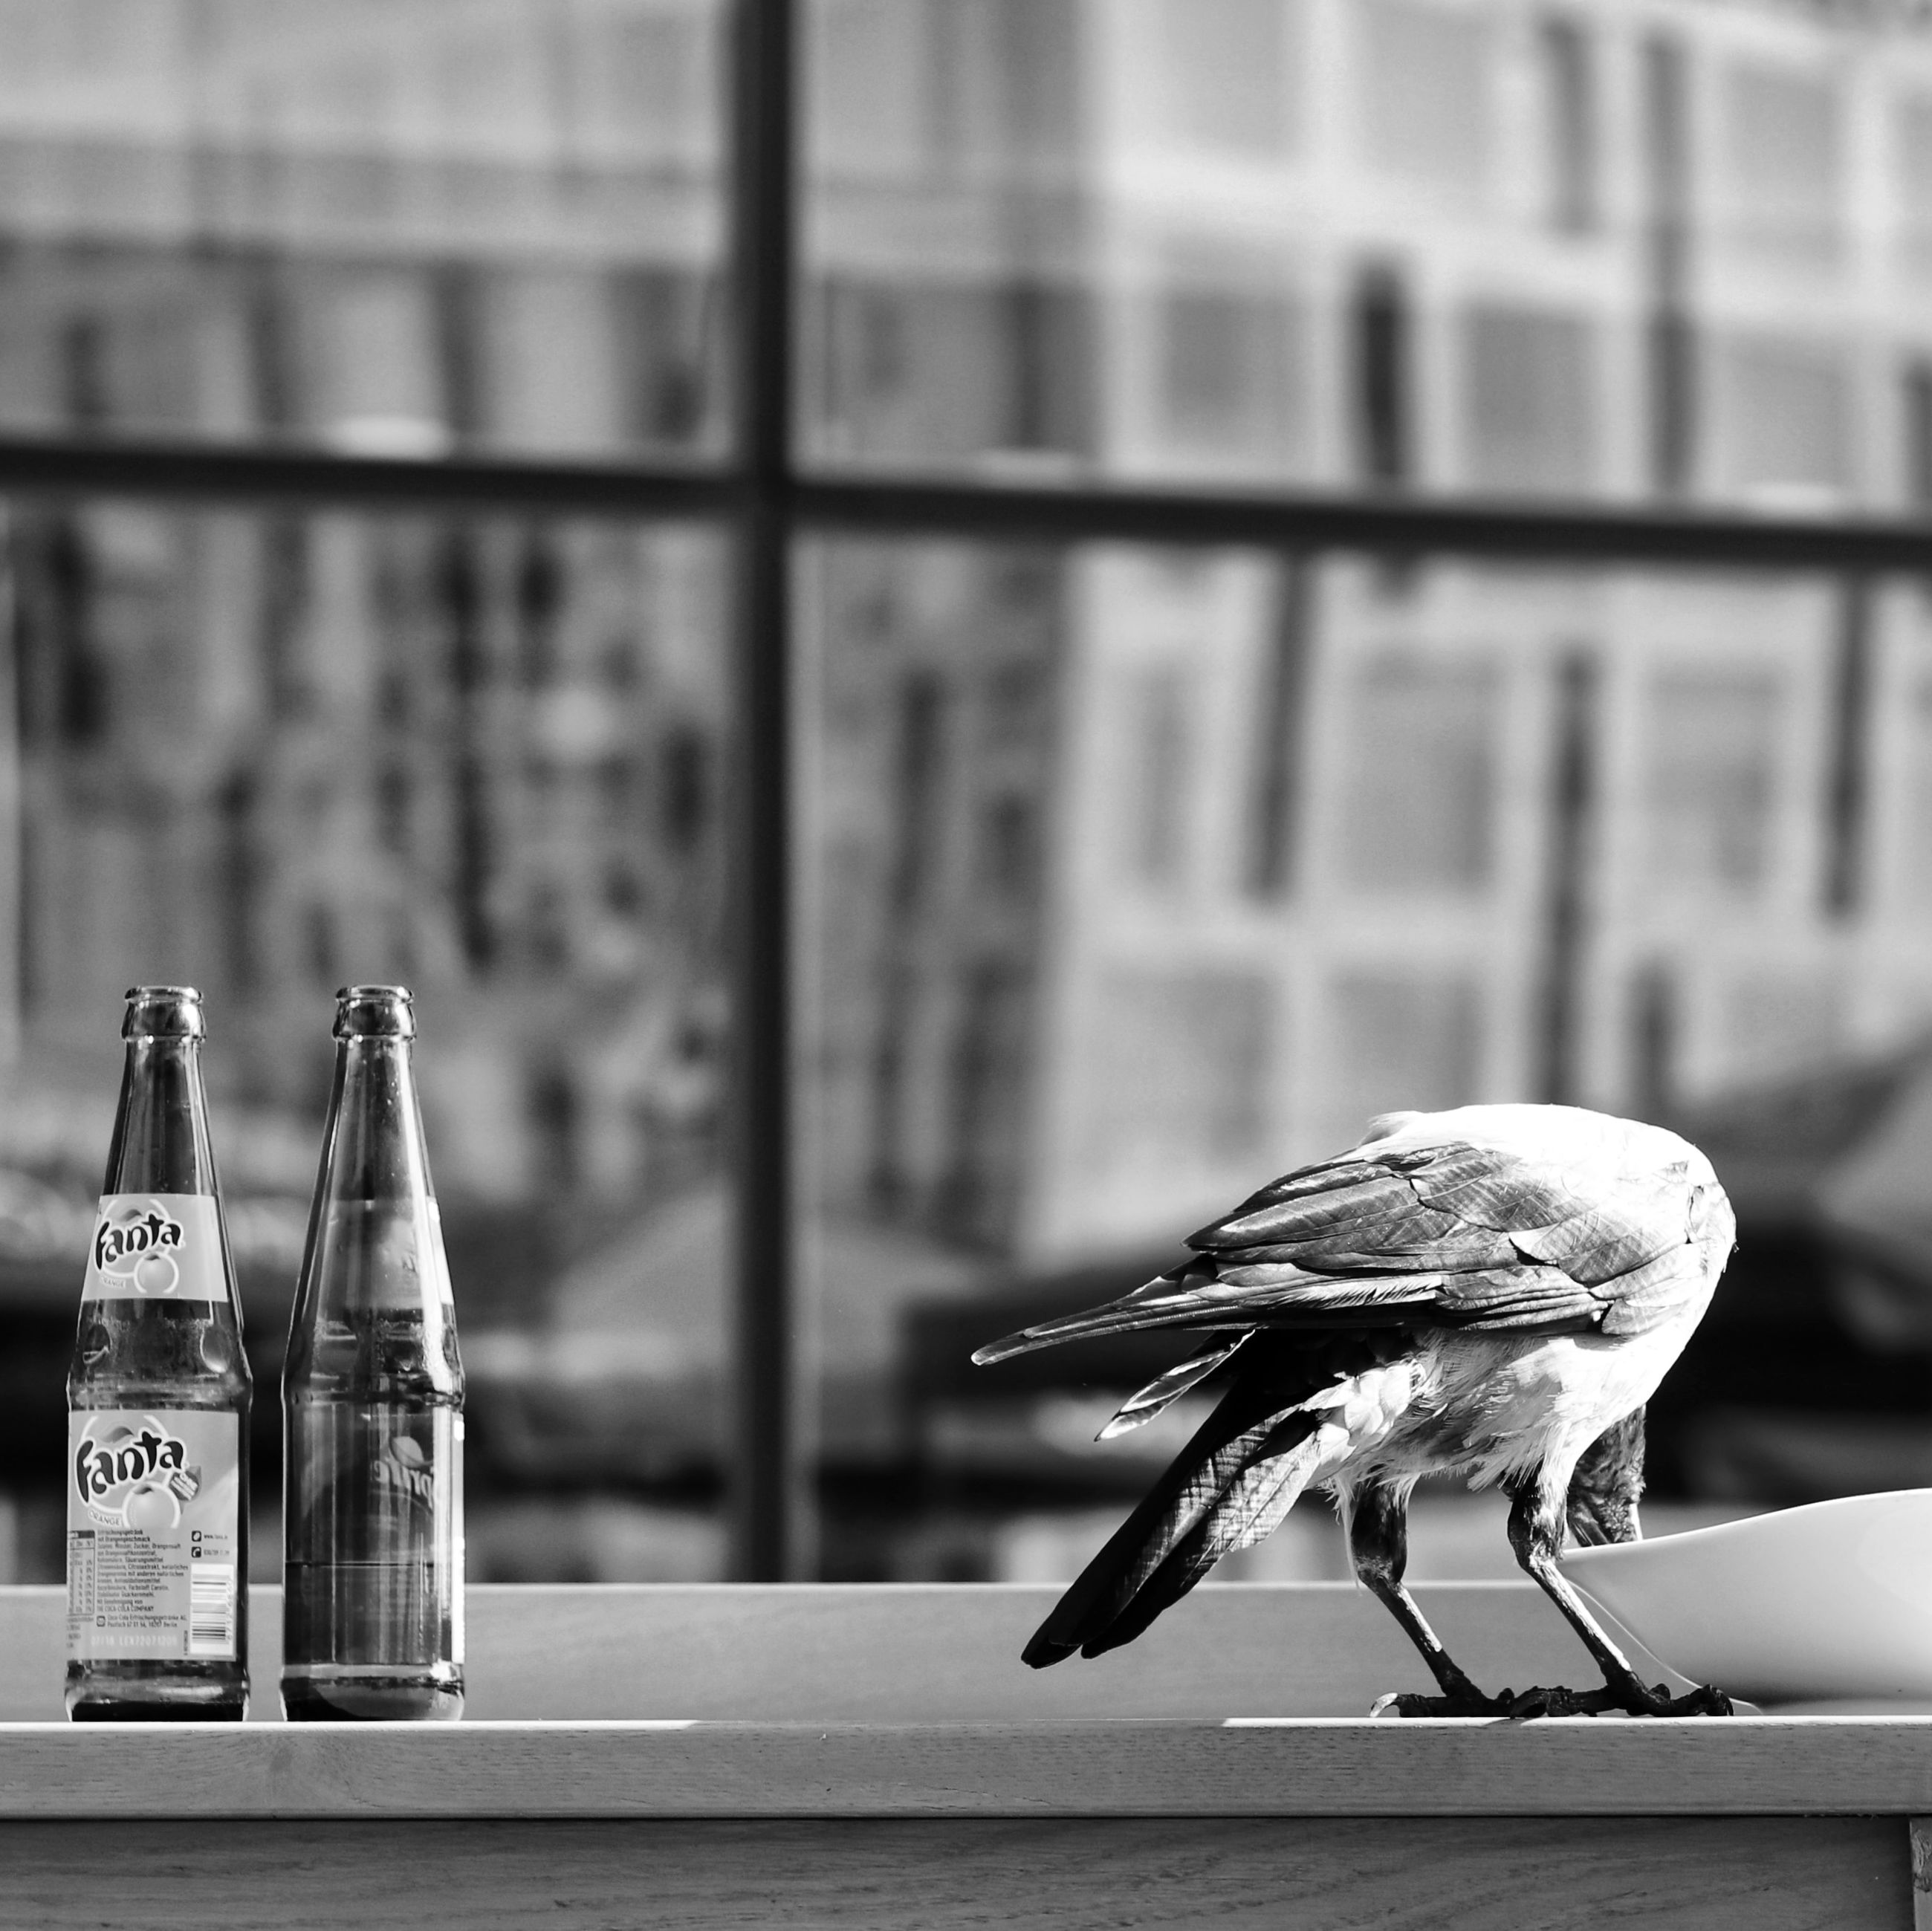 bird, animal themes, focus on foreground, animal, vertebrate, animal wildlife, animals in the wild, table, no people, container, indoors, glass - material, day, bottle, one animal, close-up, window, food, architecture